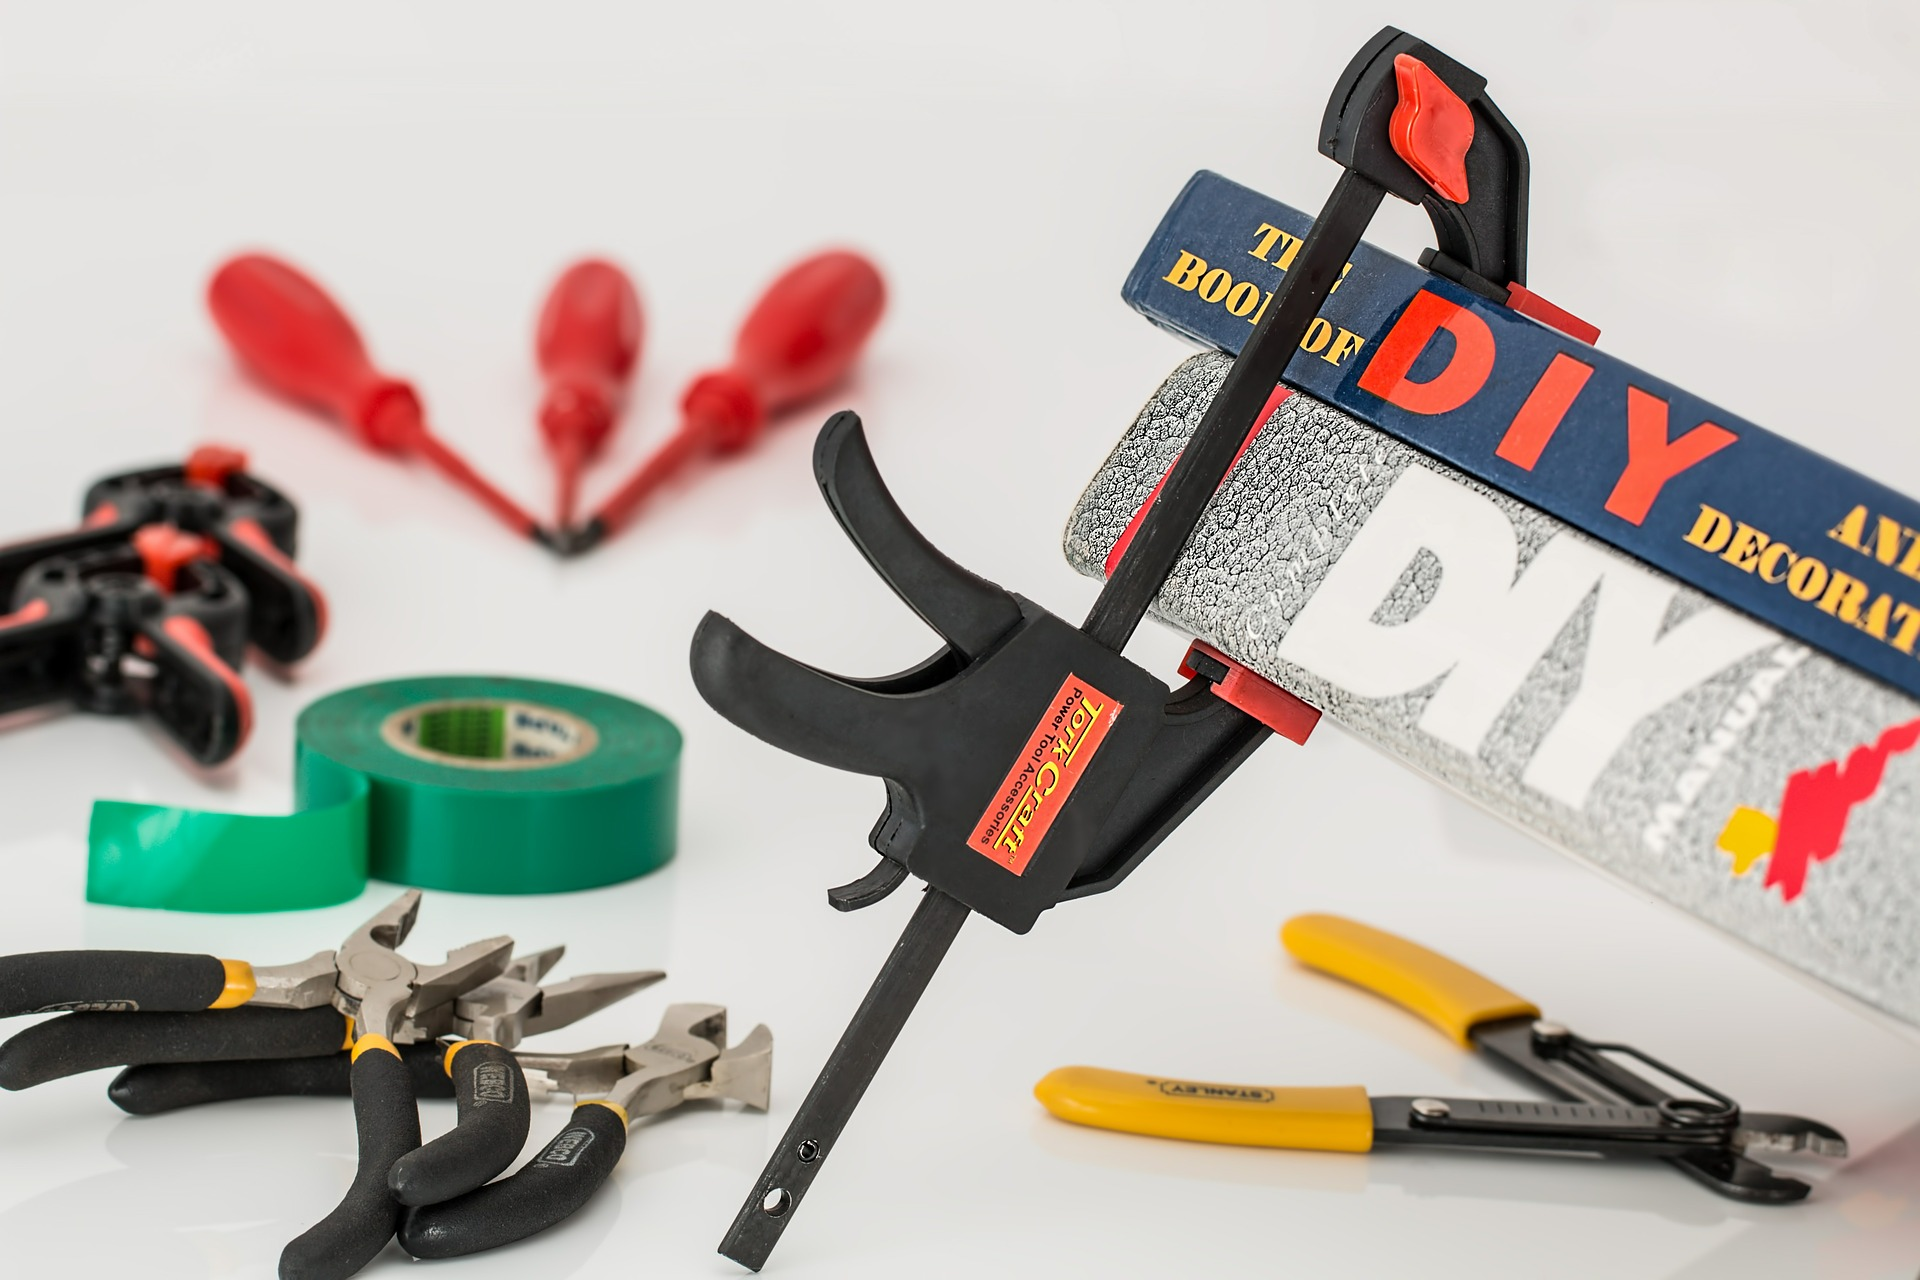 Crafting tools, tape, and a clamp